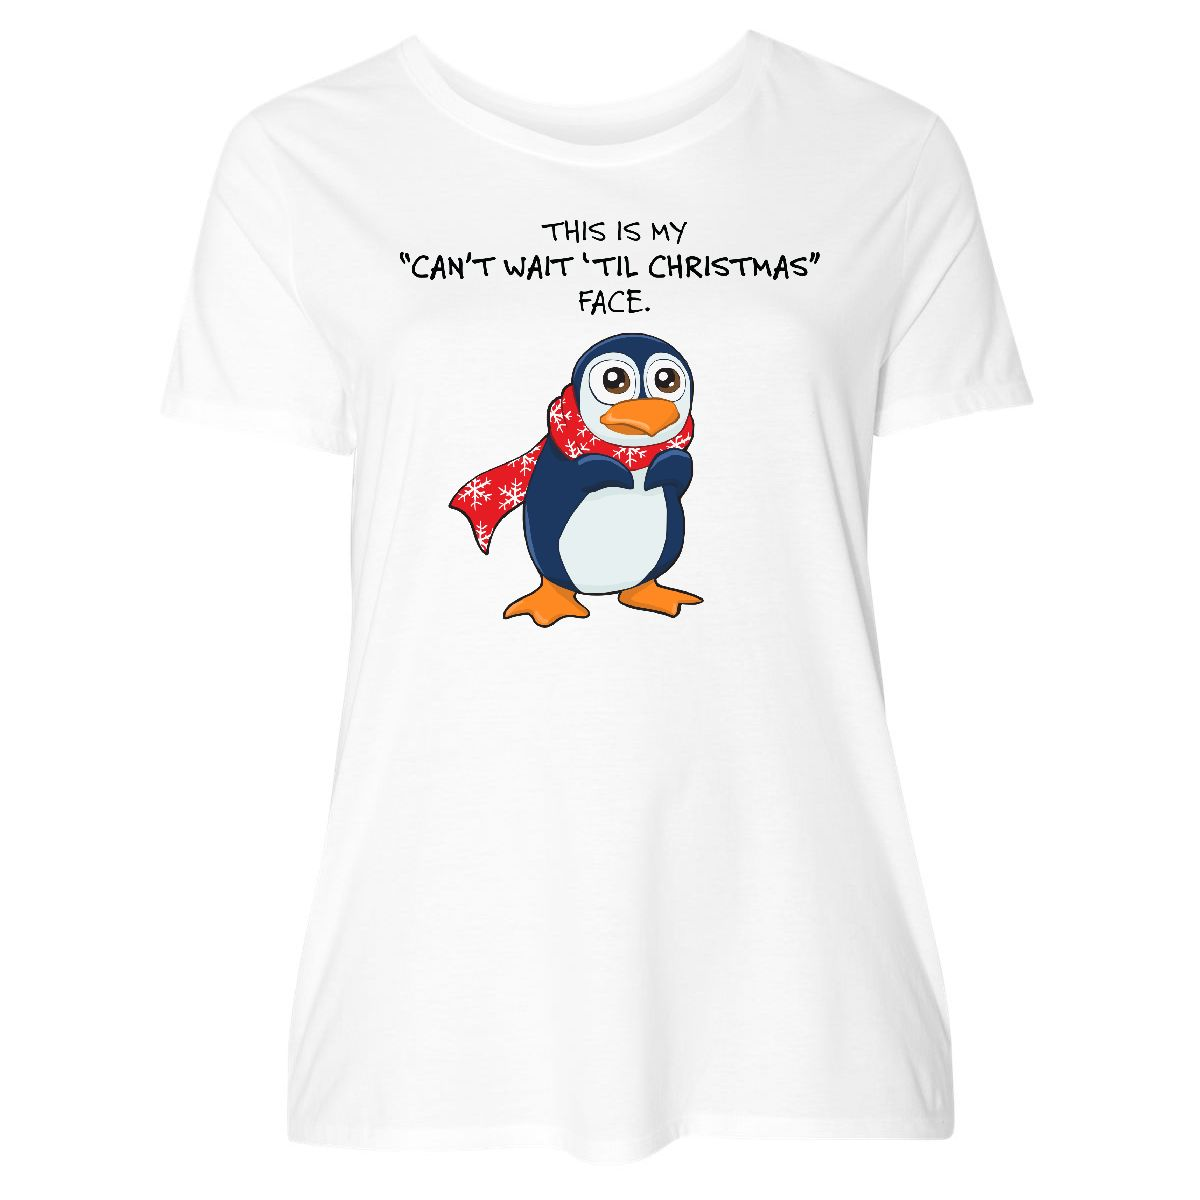 bc8b889f484 Inktastic Christmas Face-penguin Women s Plus Size T-Shirt Penguin ...